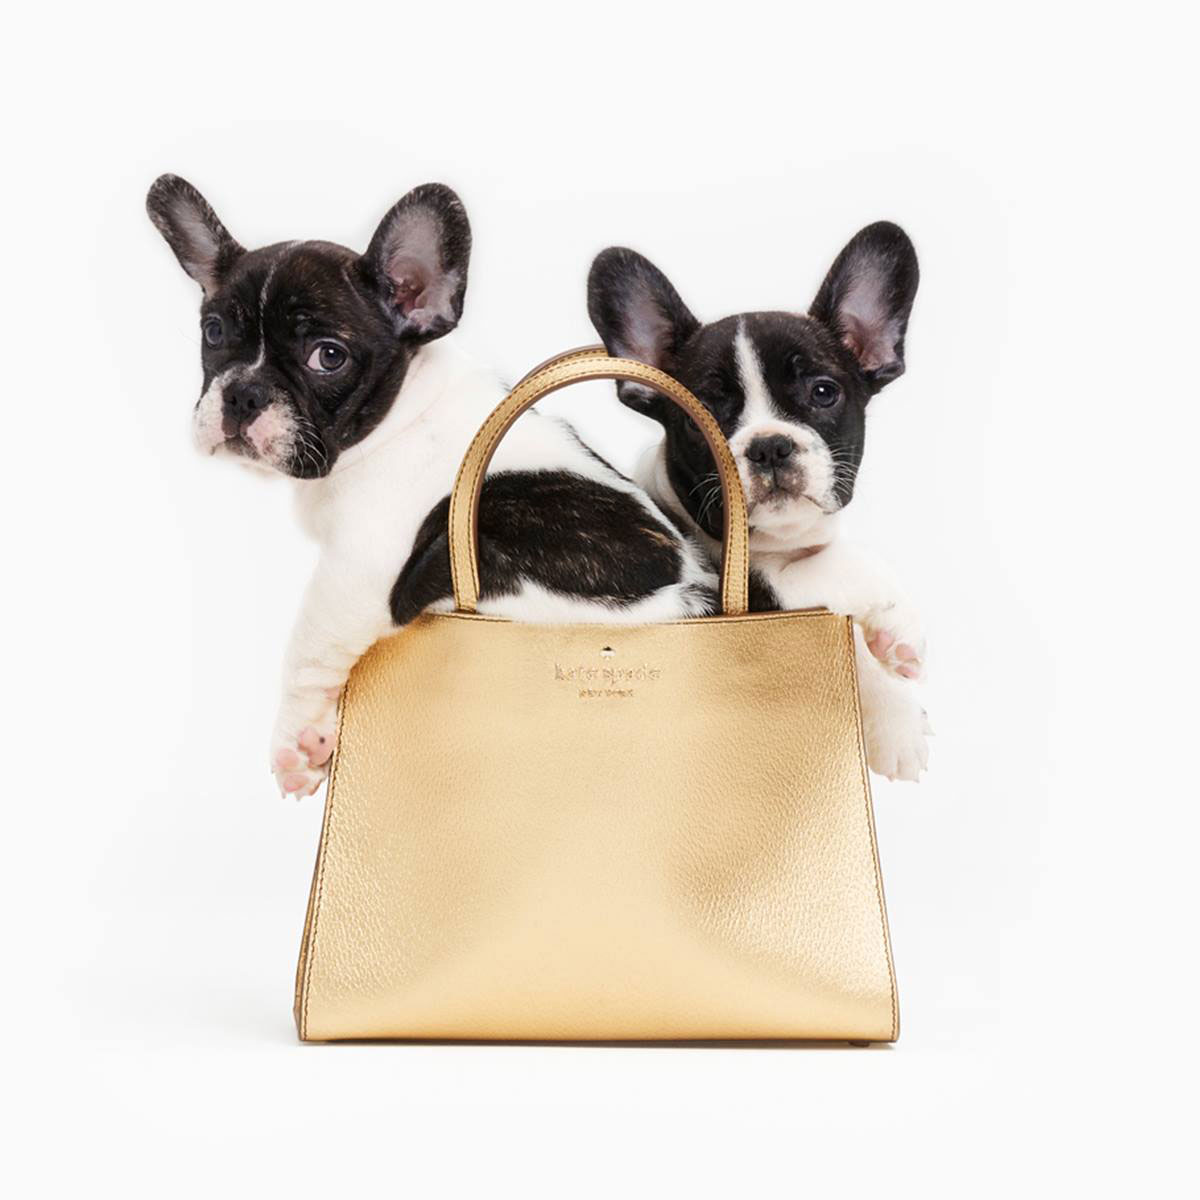 Kate Spade, French bulldog, Frenchies, puppies, dog